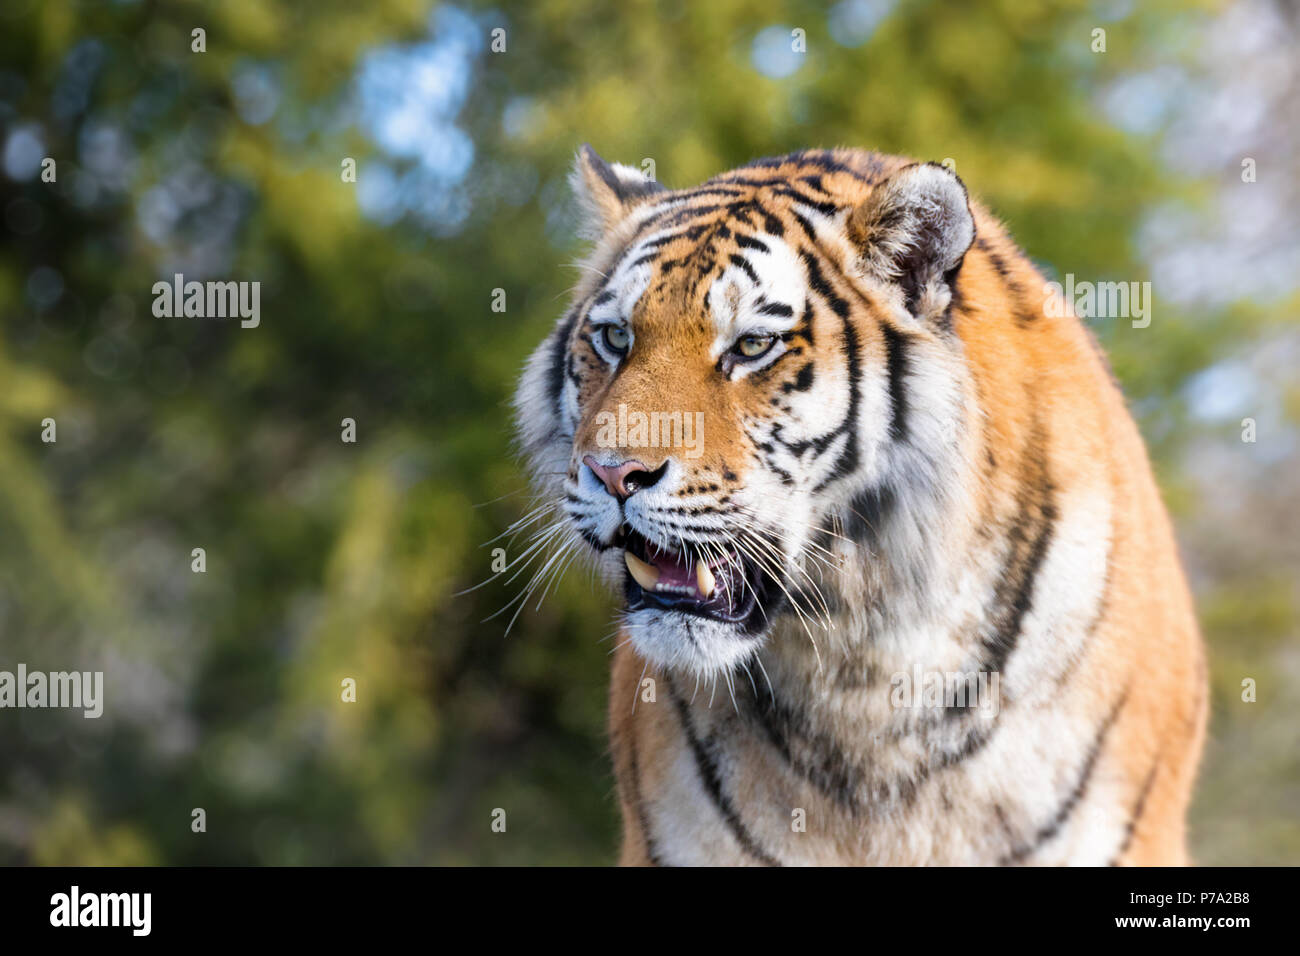 Young adult Siberian tiger, otherwise known as the Amur Tiger, bares his teeth. These big cats are indigenous to far eastern Russia. - Stock Image